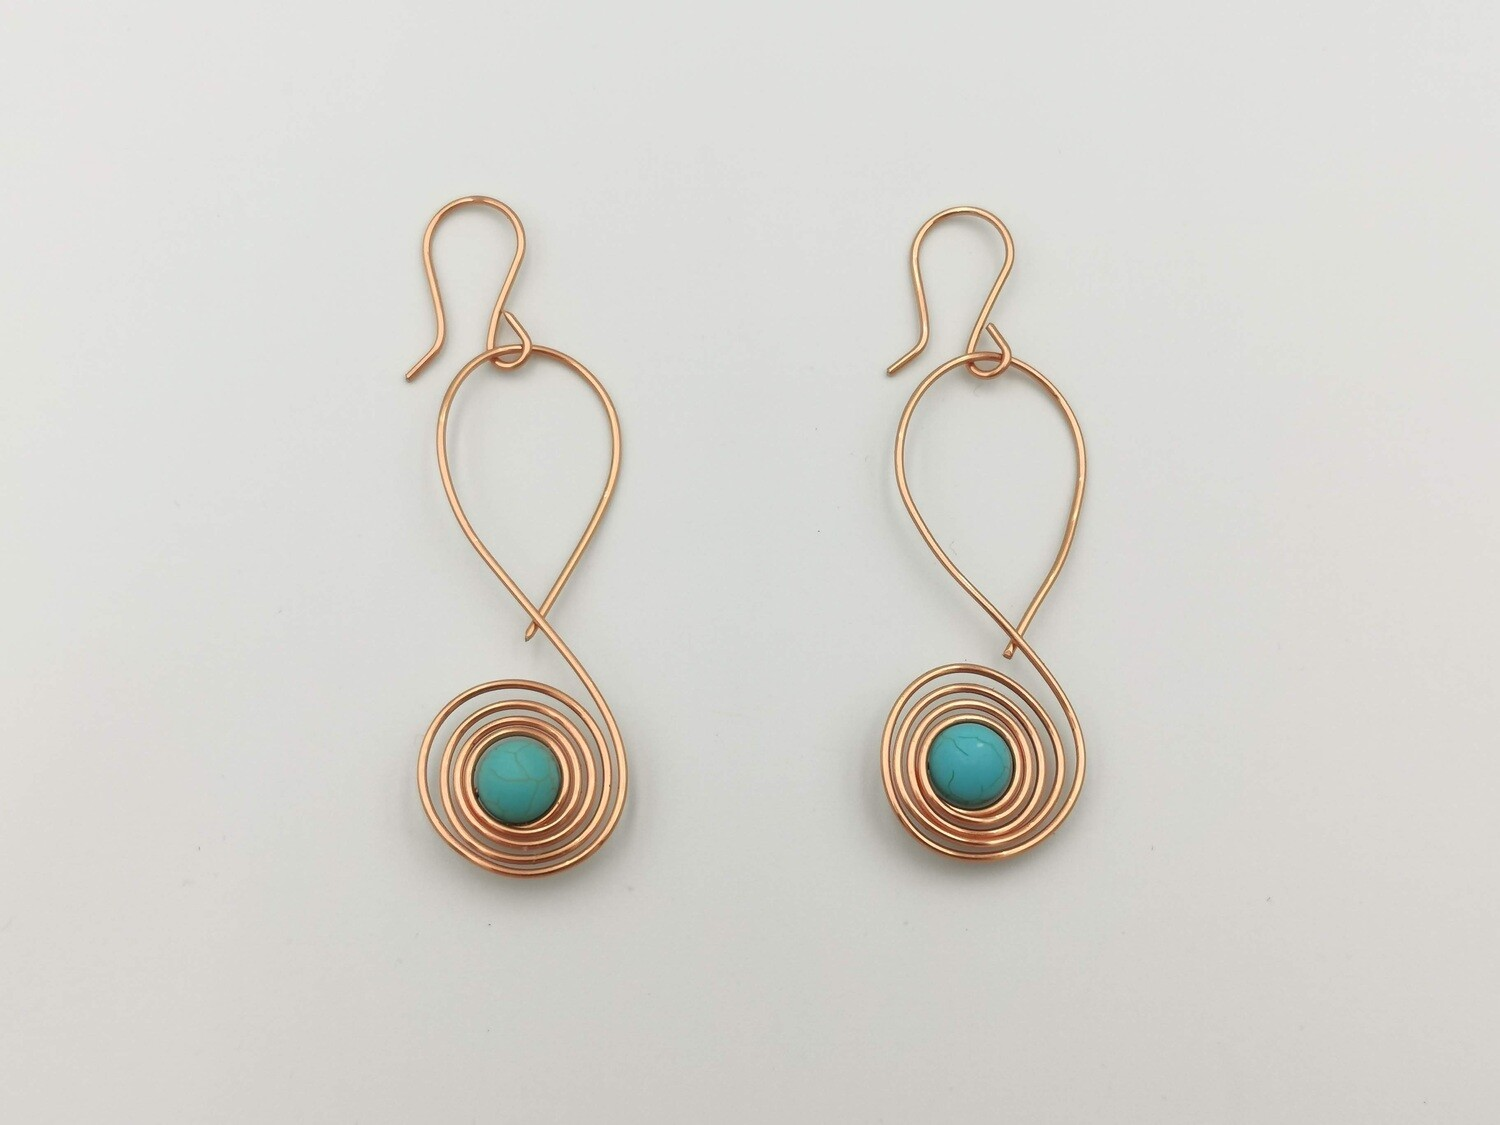 Coiled Copper and Light Blue Gemstone Earrings